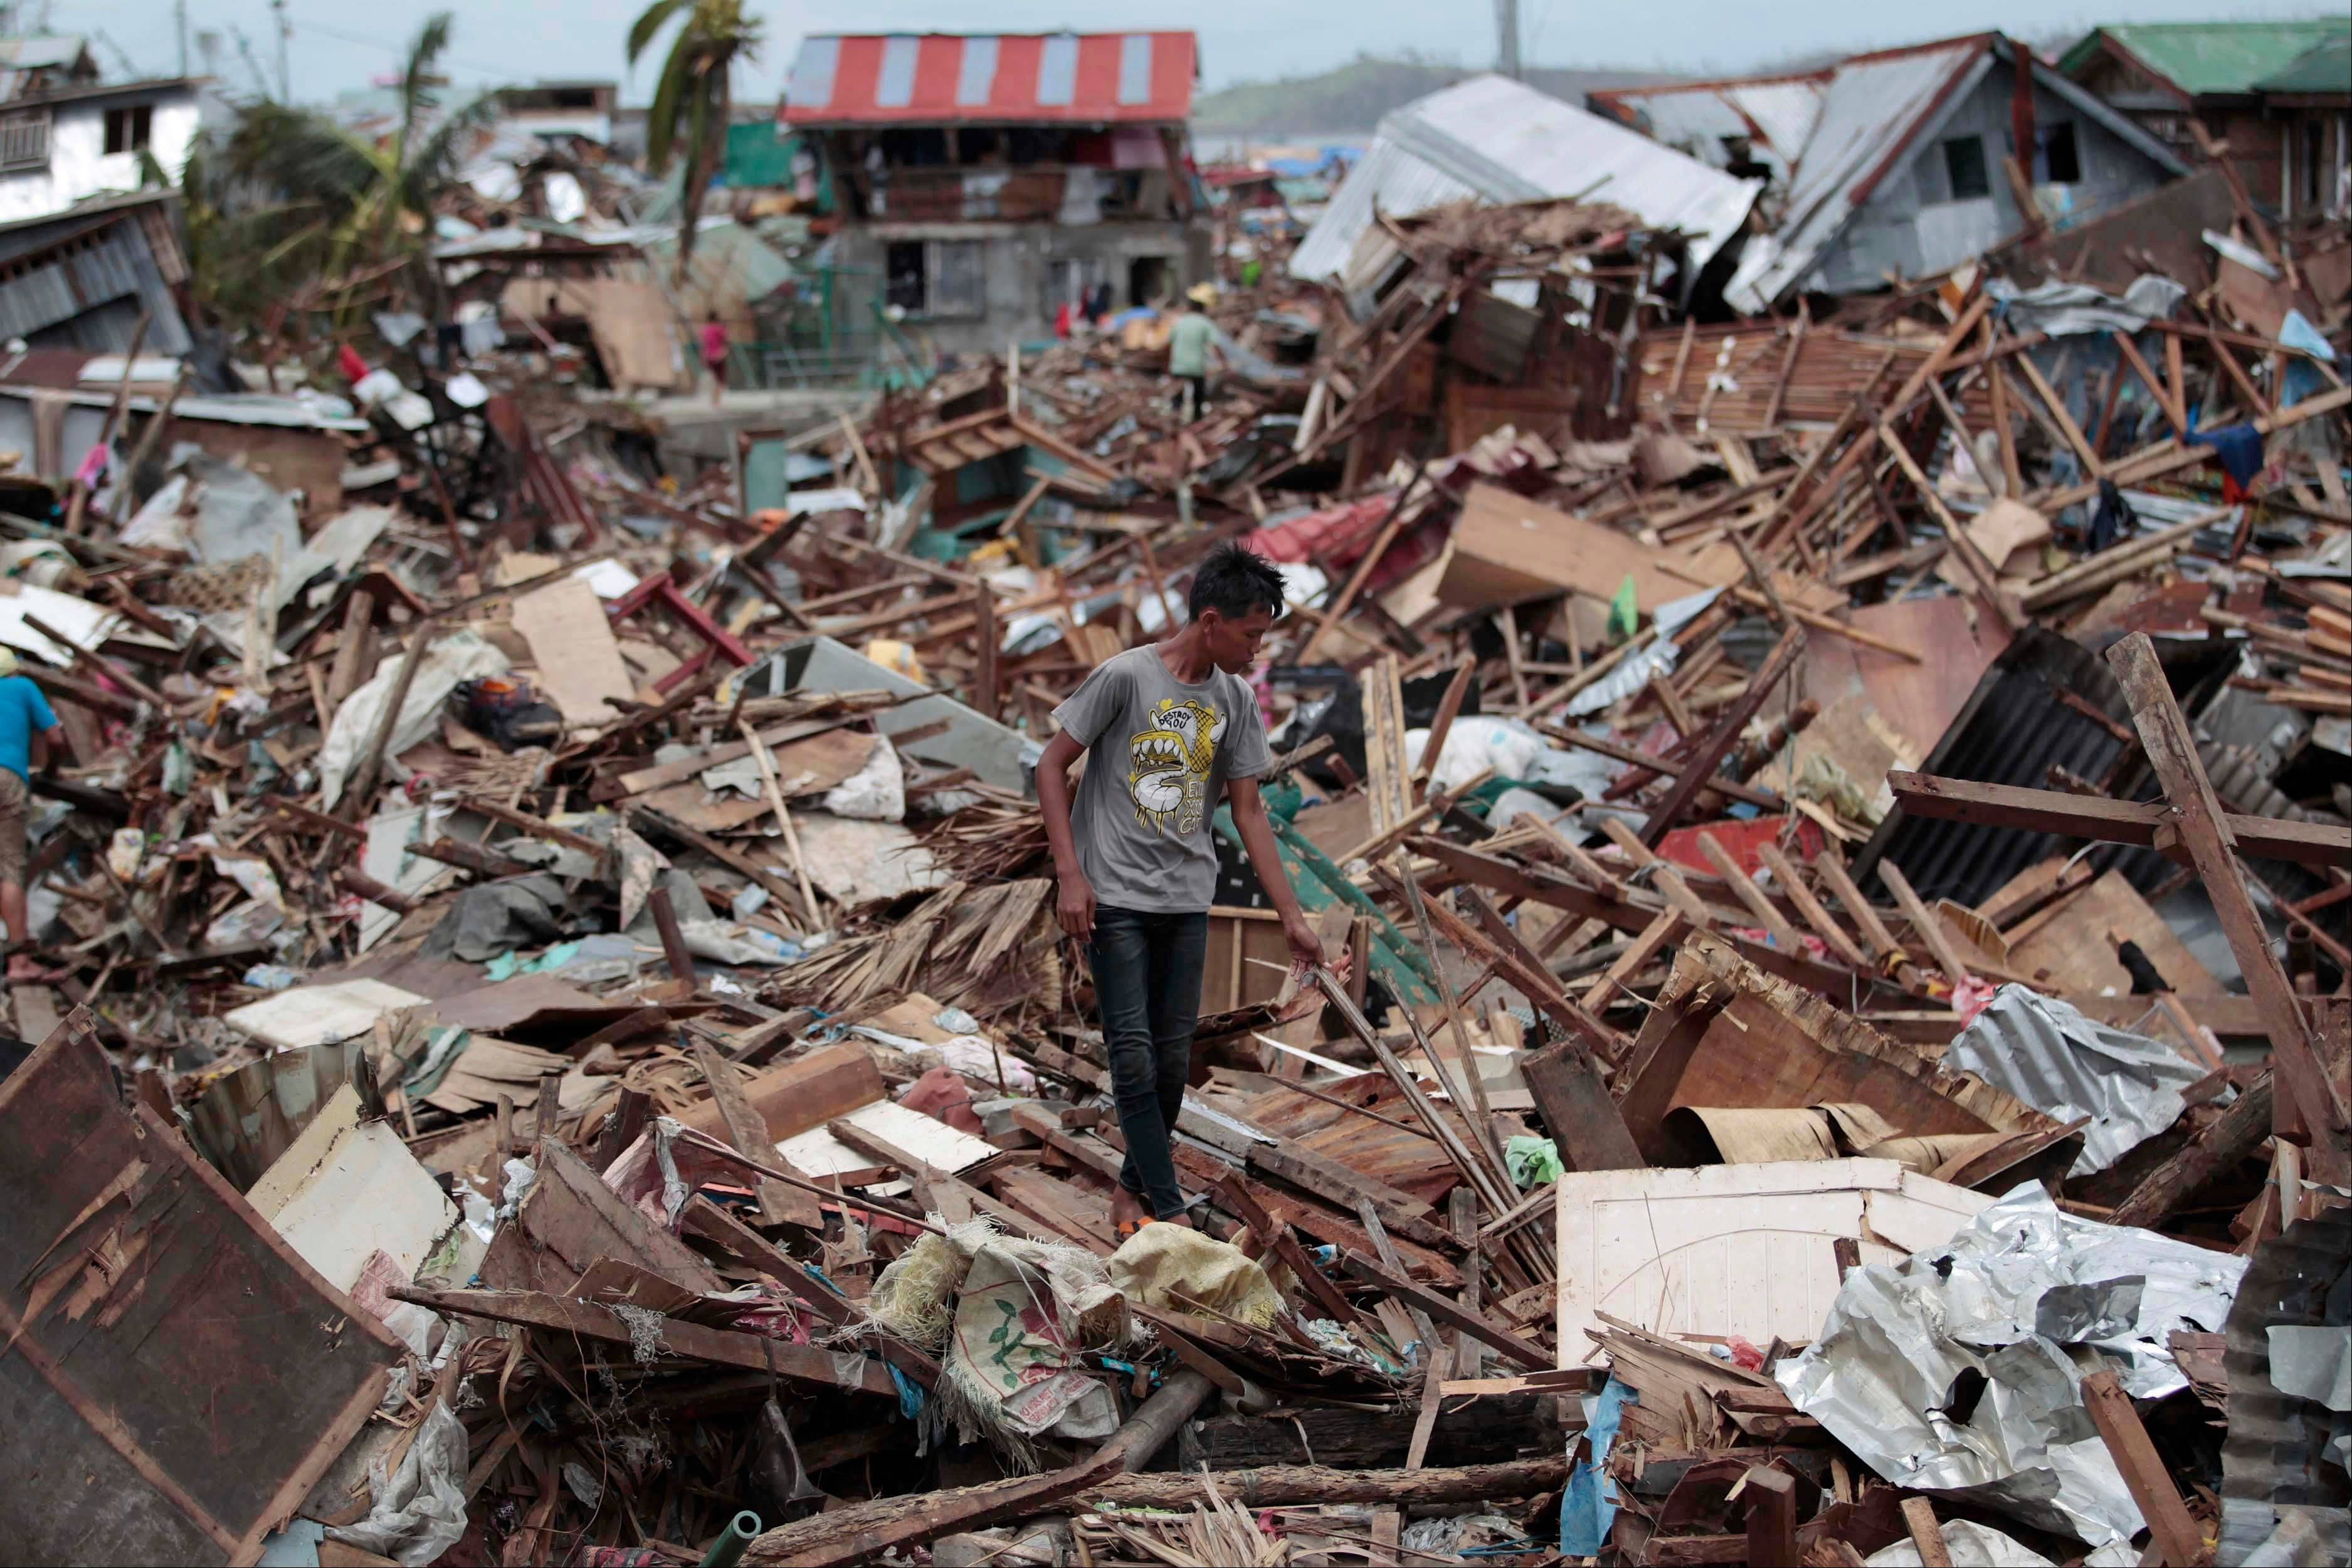 A Filipino man walks among debris from damaged homes at typhoon-hit Tacloban city, Leyte province, central Philippines on Wednesday, Nov. 13, 2013. Typhoon Haiyan, one of the strongest storms on record, slammed into six central Philippine islands on Friday leaving a wide swath of destruction.